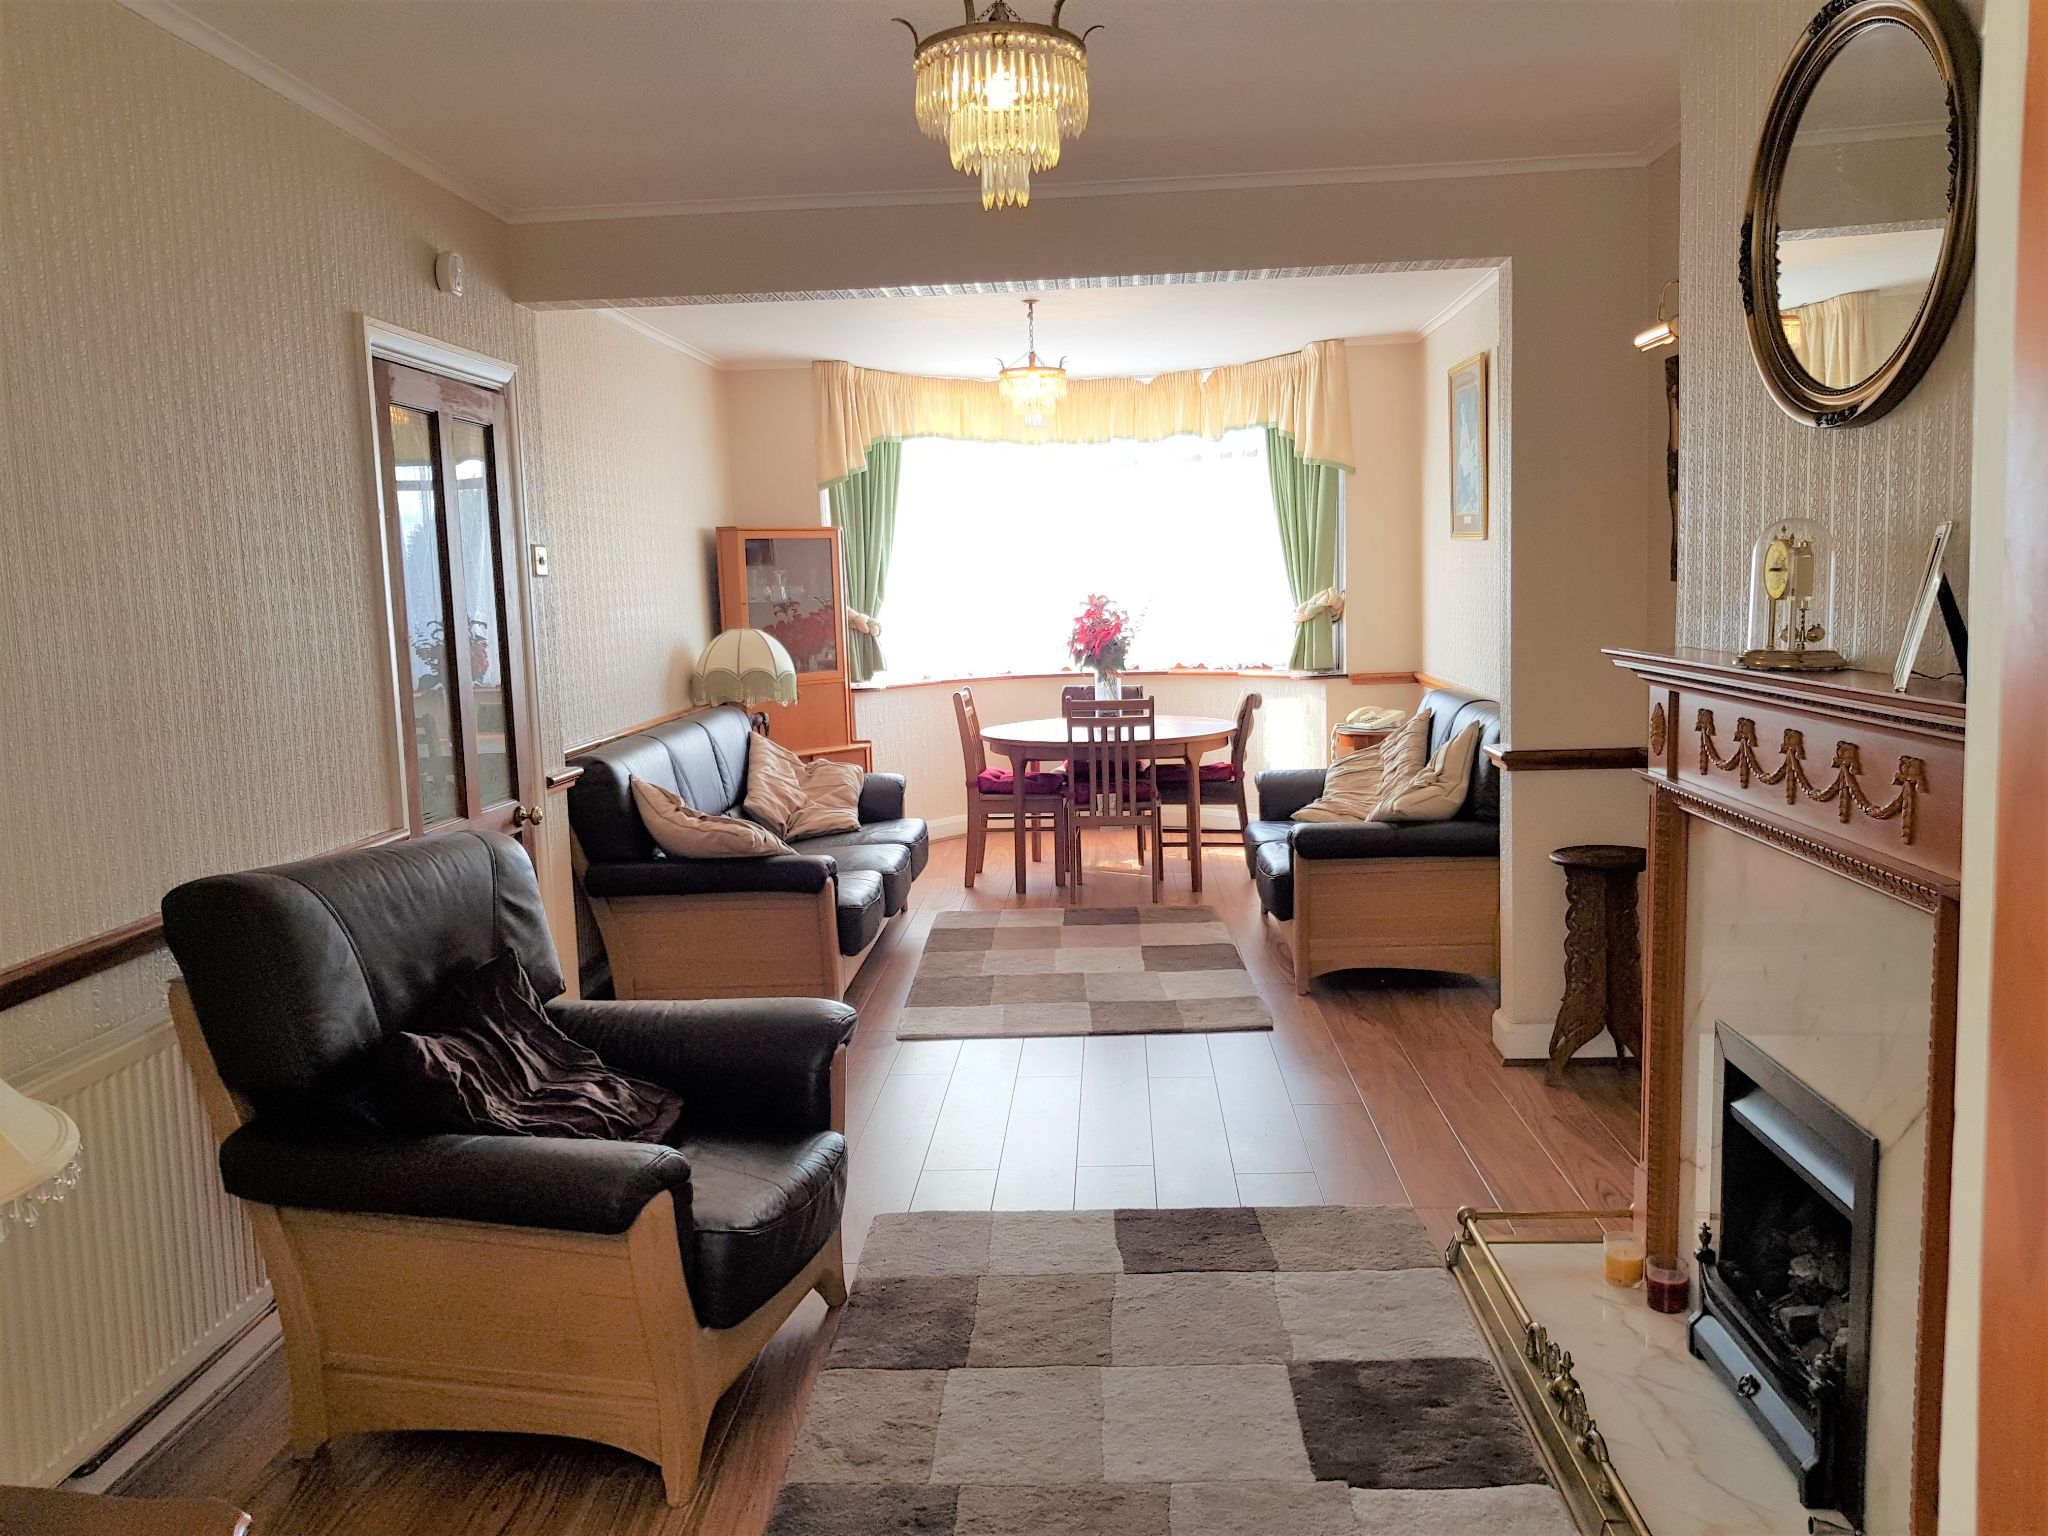 4 Bed Semi-detached House For Sale - THROUGH LOUNGE